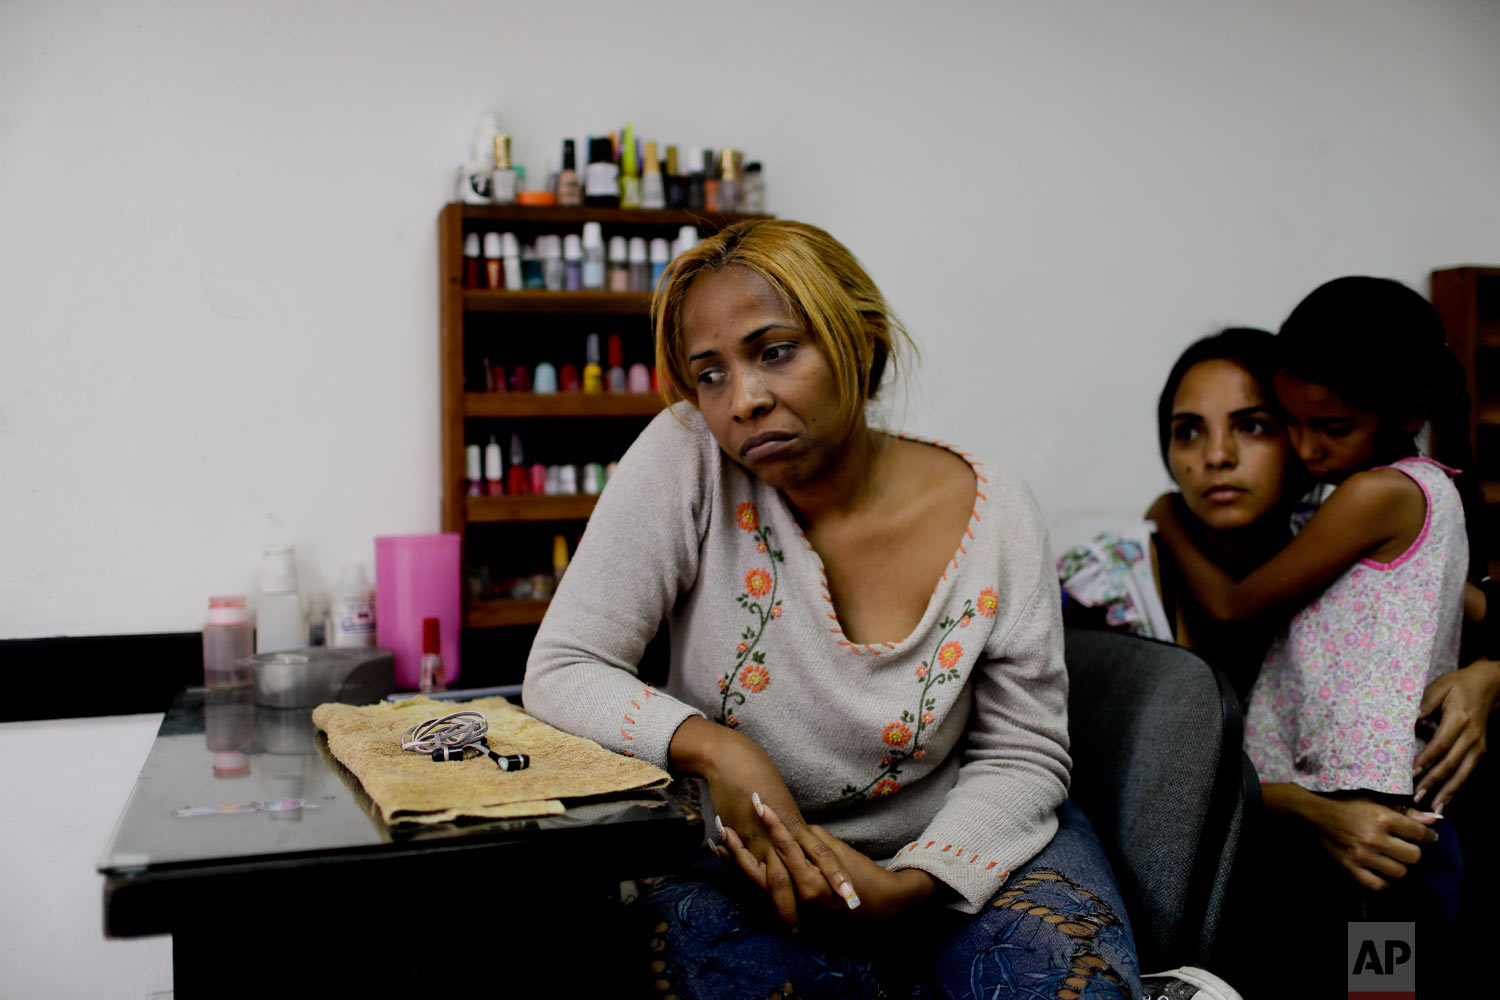 Manicurist Maria Trinidad Tobar waits for customers at a beauty salon in Caracas, Venezuela, Tuesday, March 19, 2019. (AP Photo/Natacha Pisarenko)